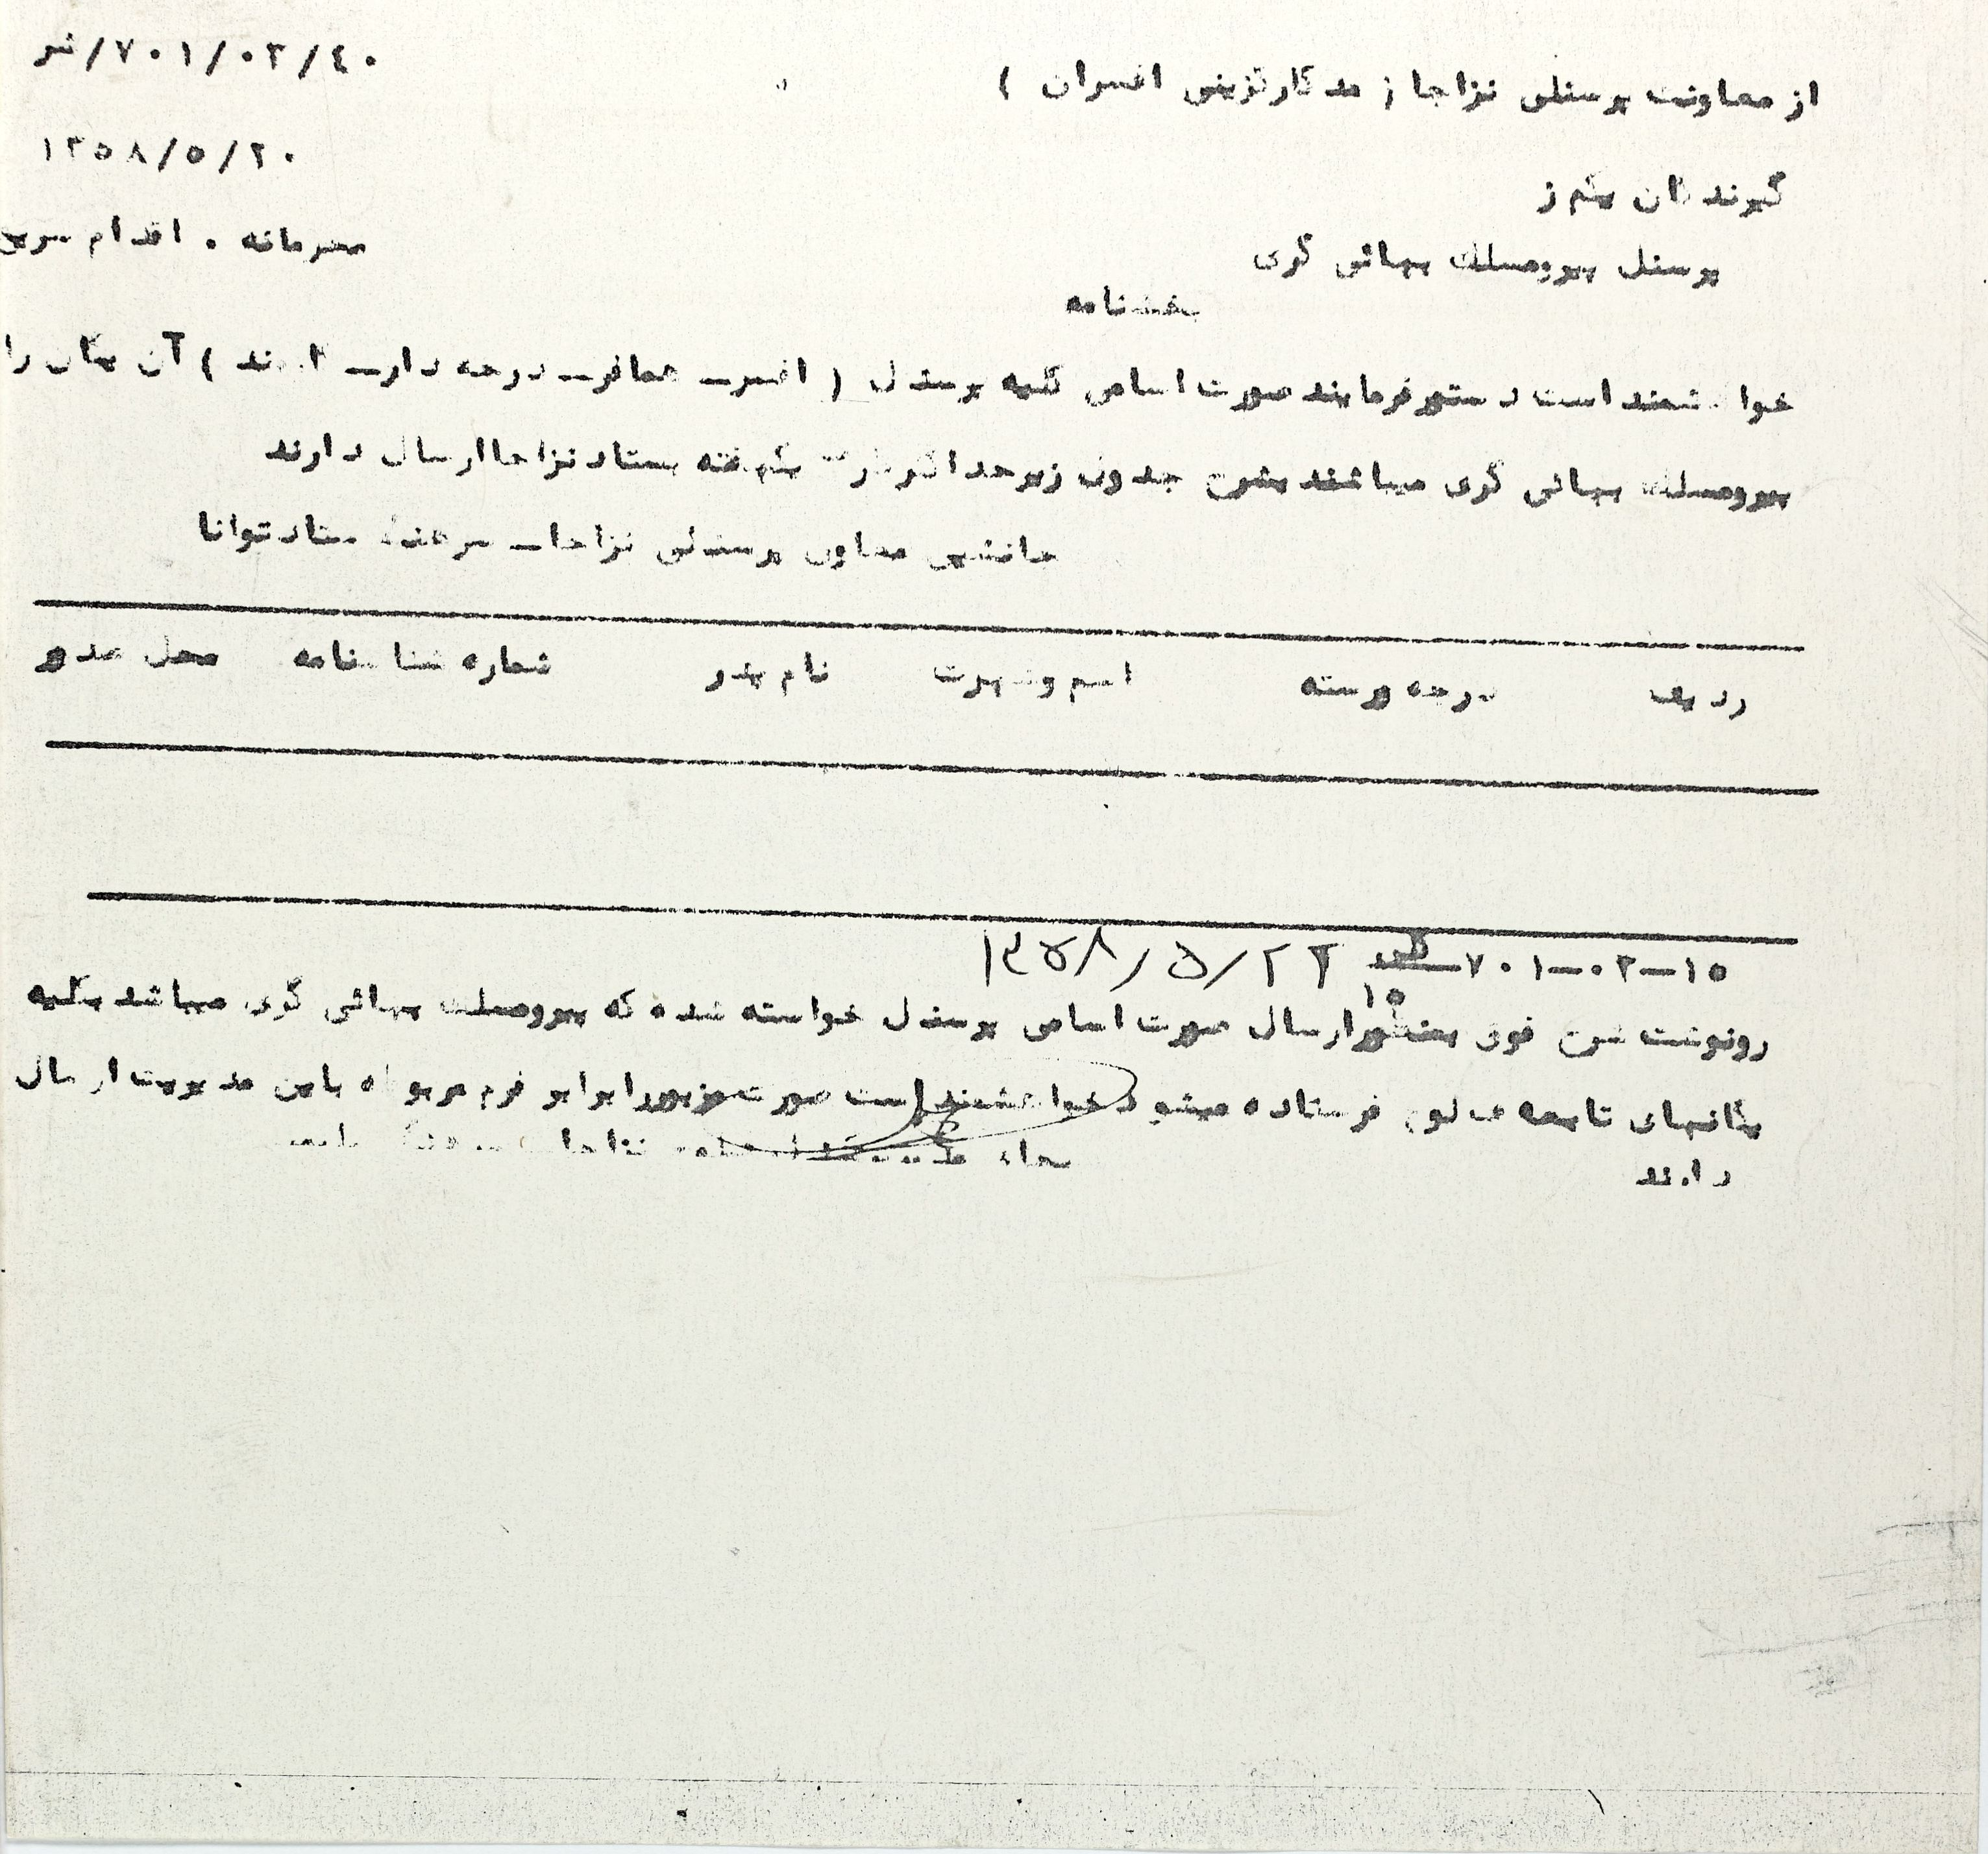 Request for names of Baha is in military service